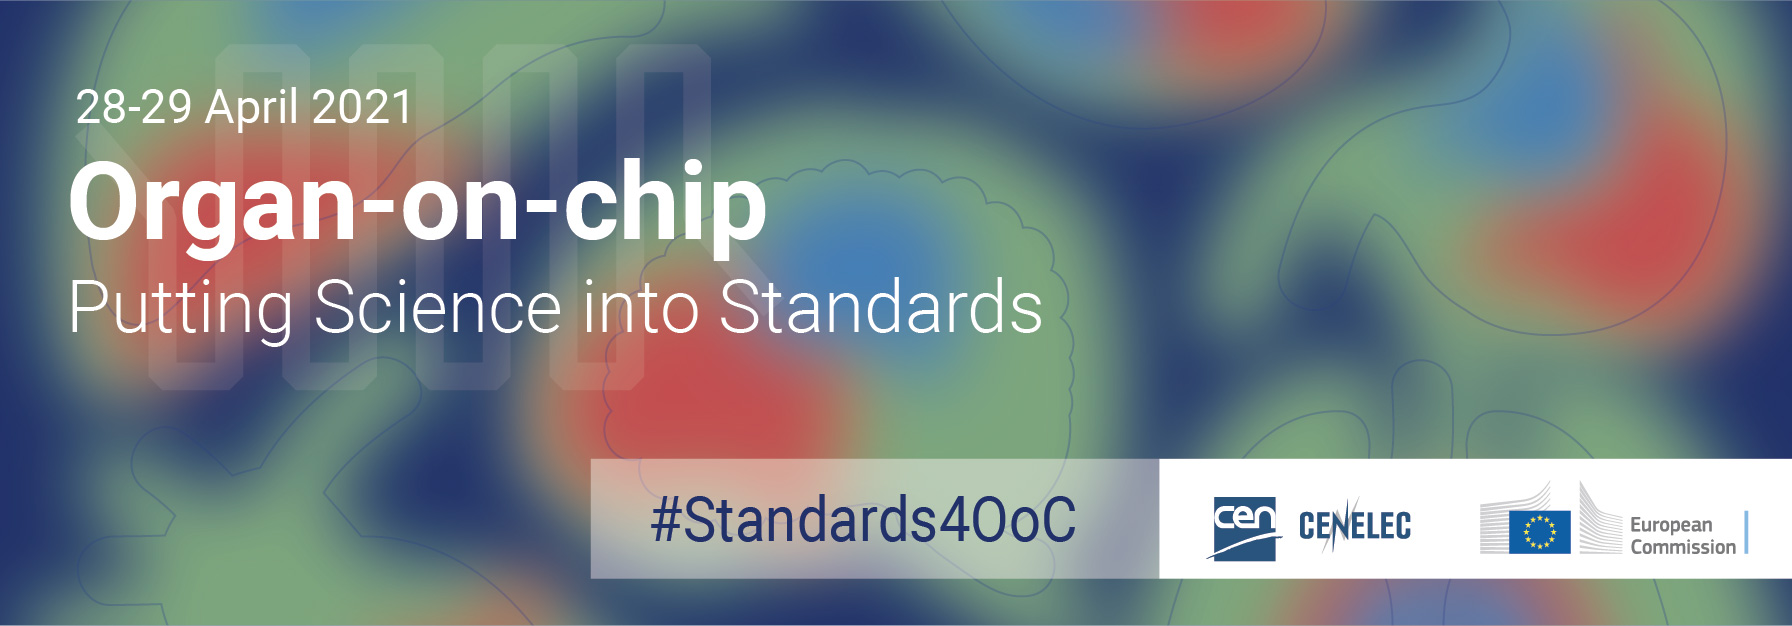 Putting Science into Standards - Organ on Chip: Towards Standardization